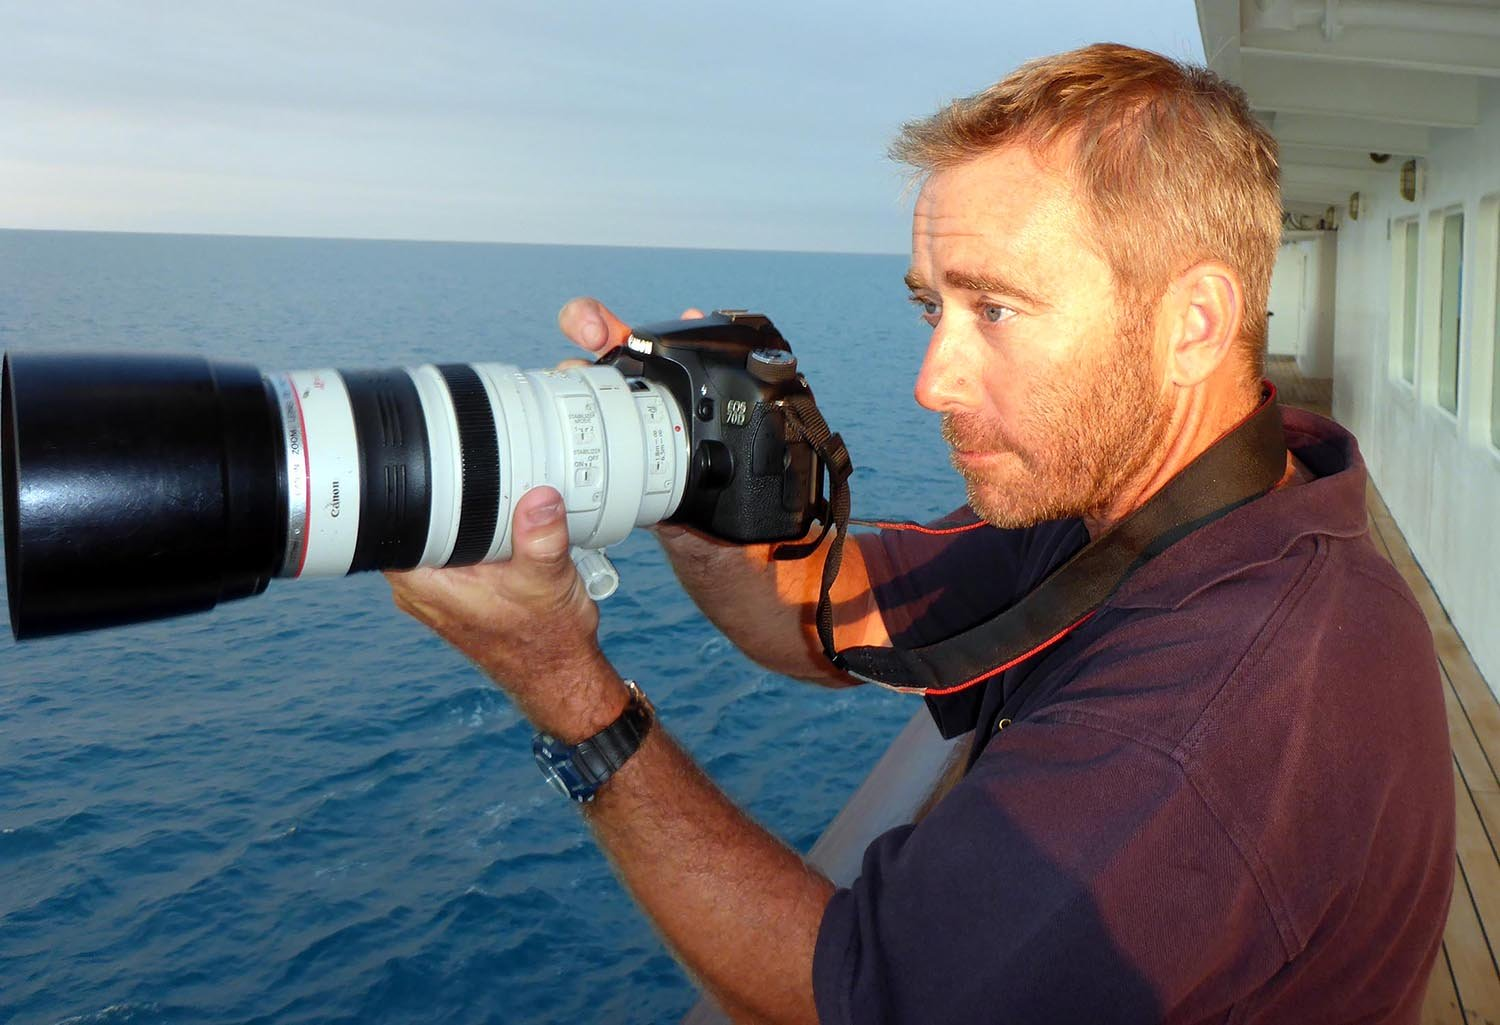 Damon Ramsey portrait on a ship, with a camera